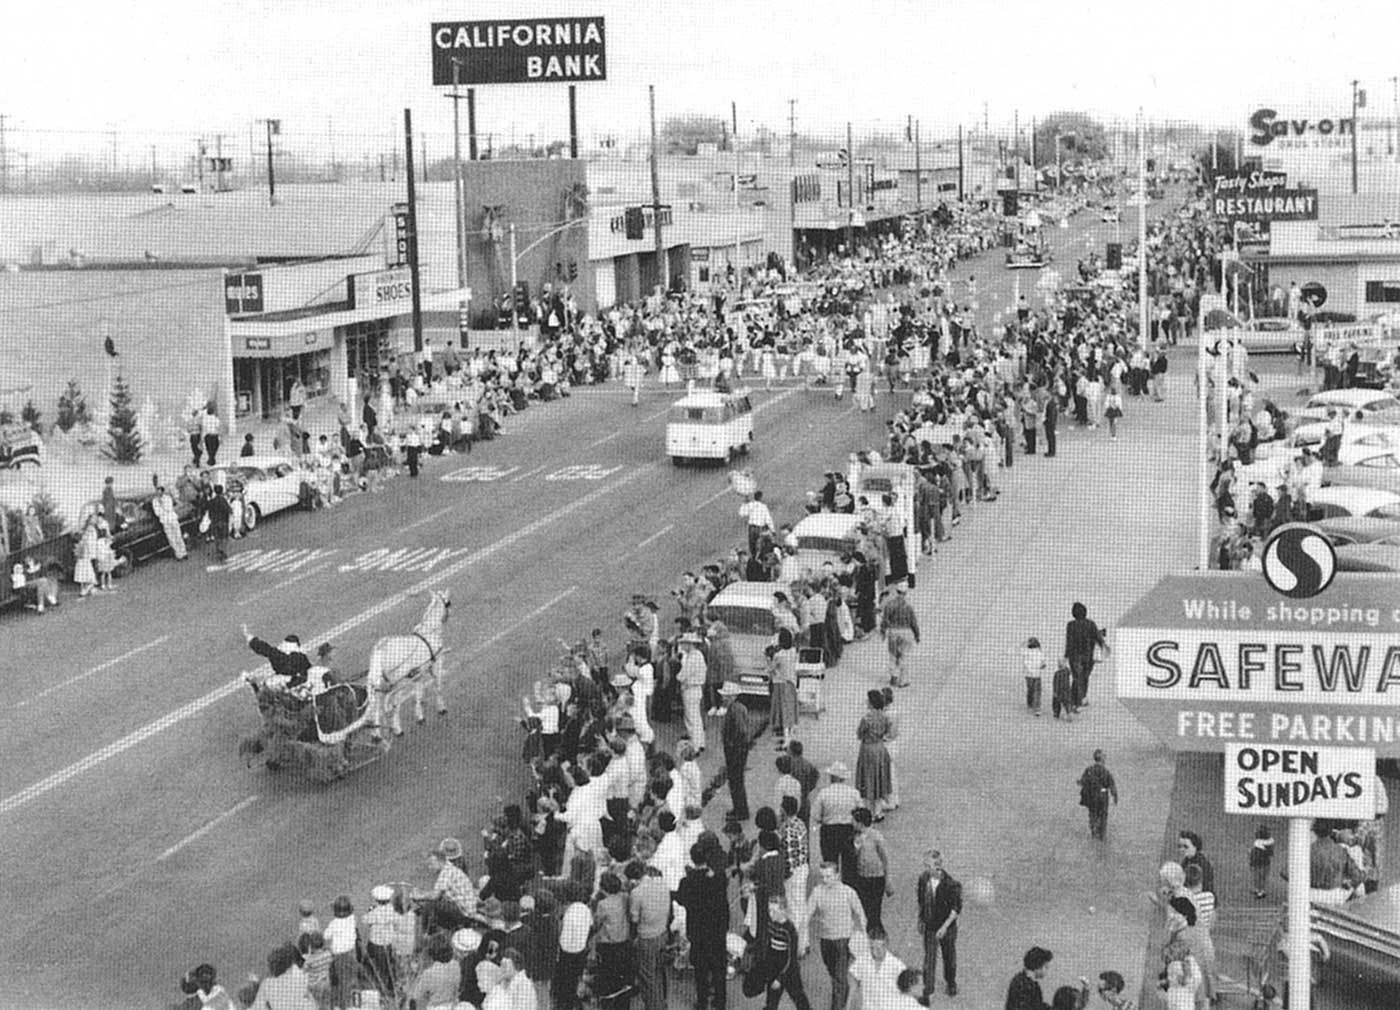 Palm green sand green on lancaster Blvd Circa 1959 Lancaster Ca Christmas parade